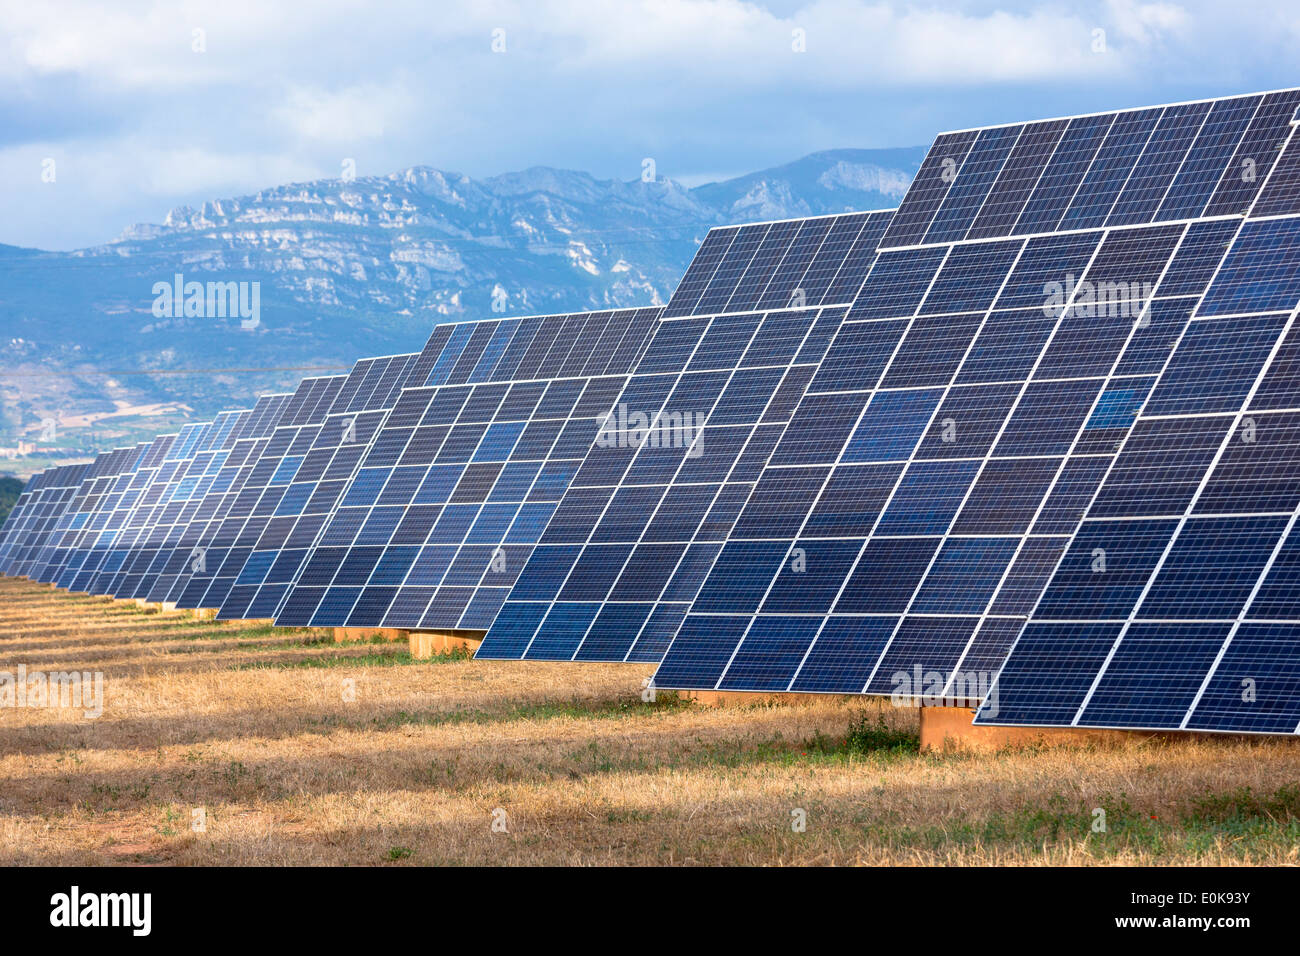 A field of solar panels in La Rioja, Northern Spain Stock Photo